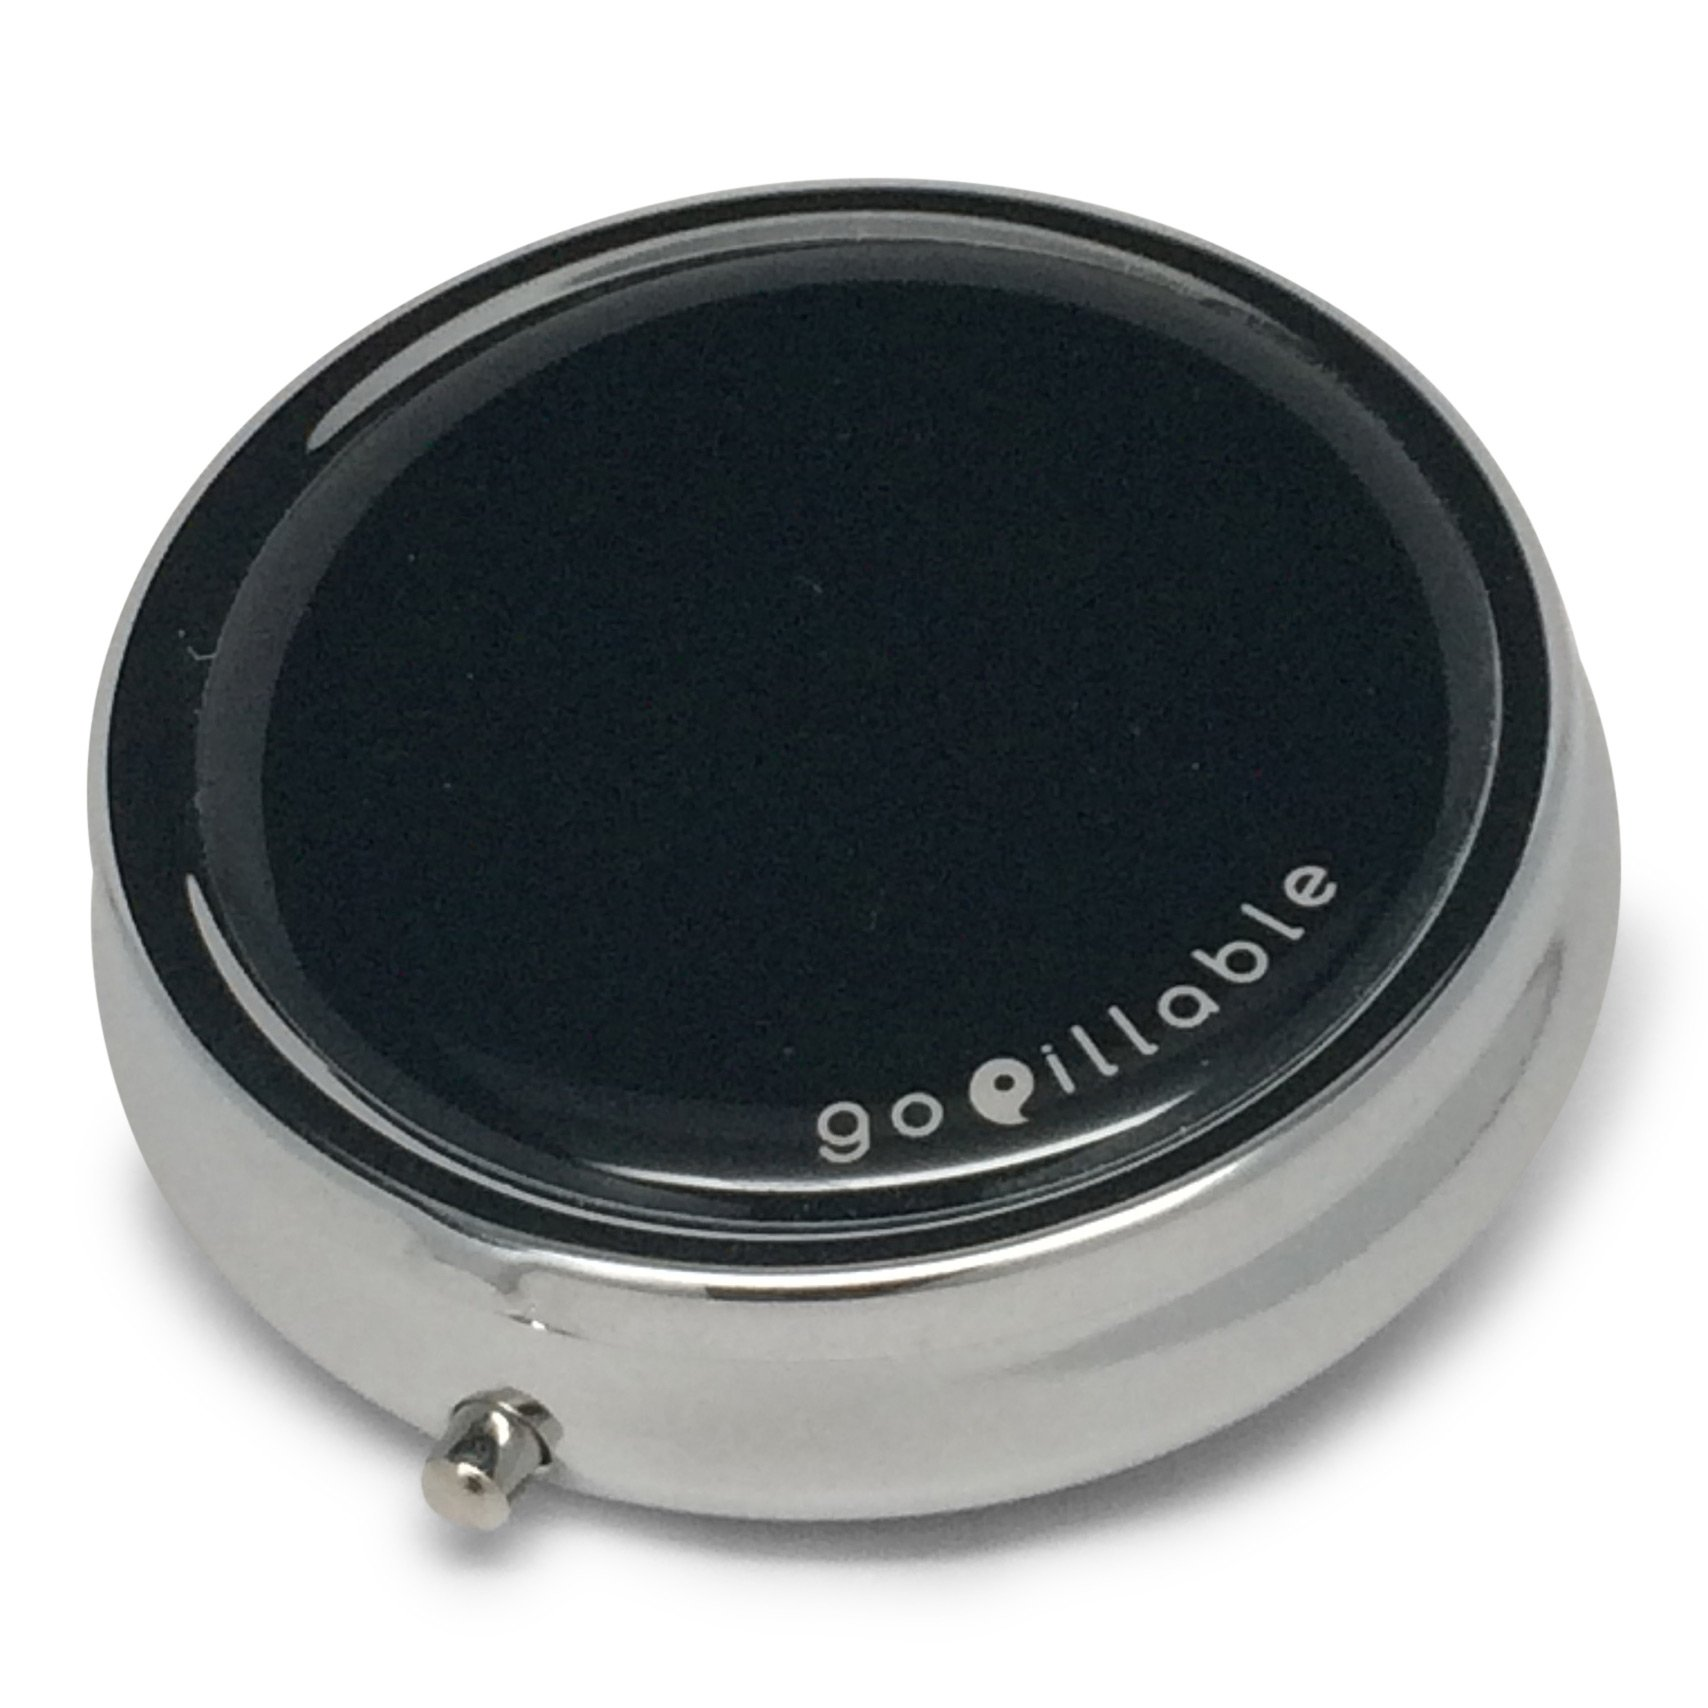 GoPillable Black Decorative Round Pill Box for Purse or Pocket